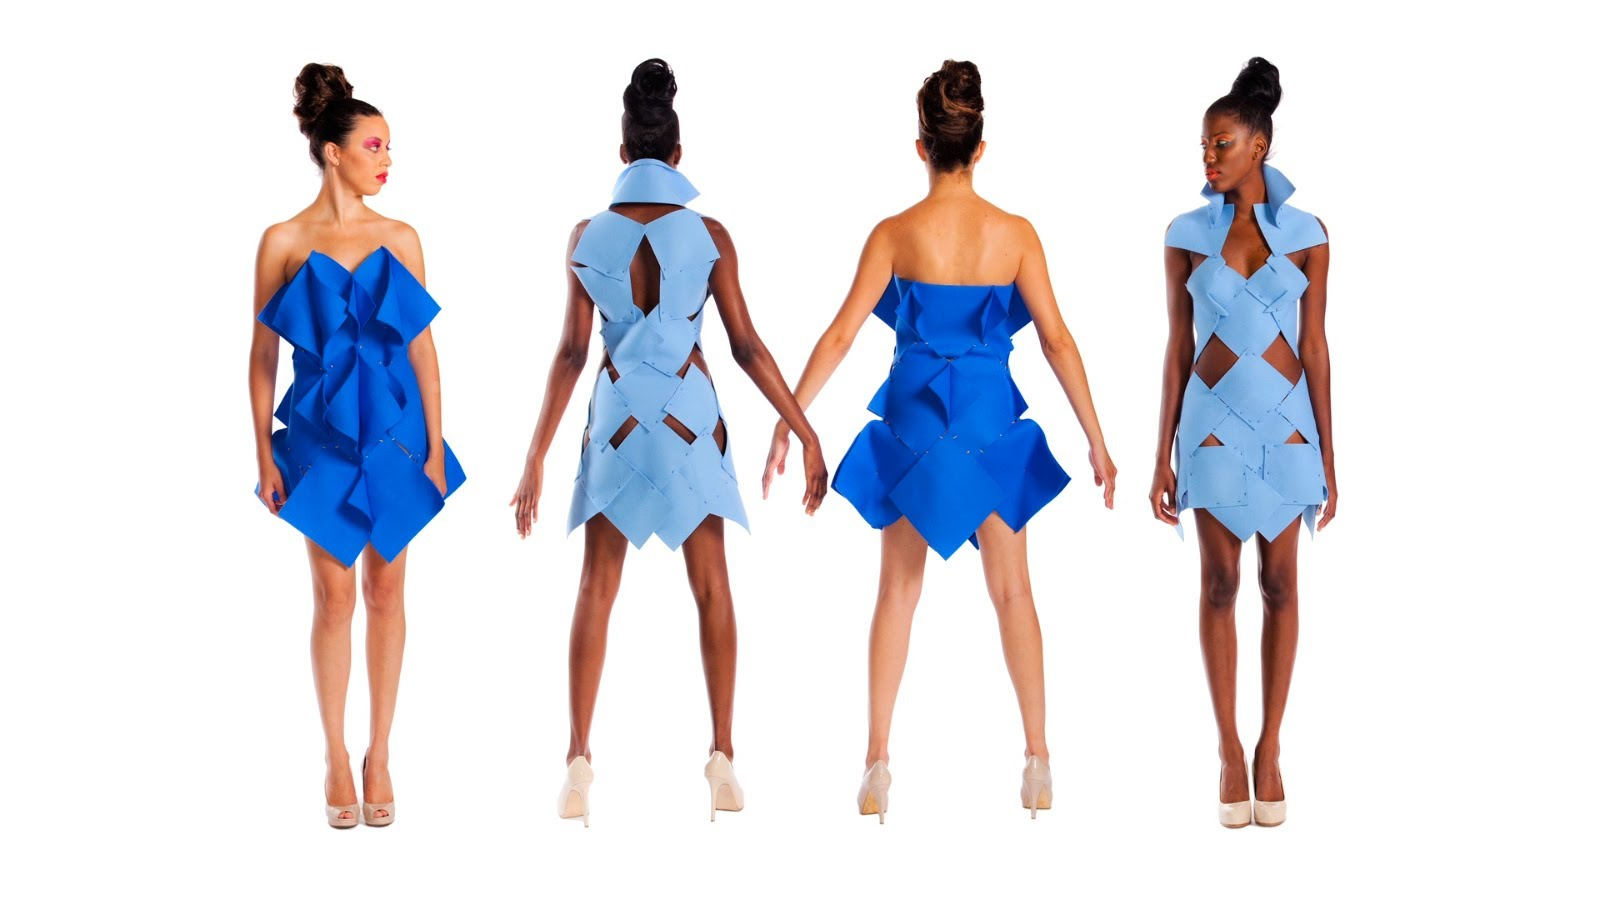 This image is of dresses designed by students who would have taken such a course.